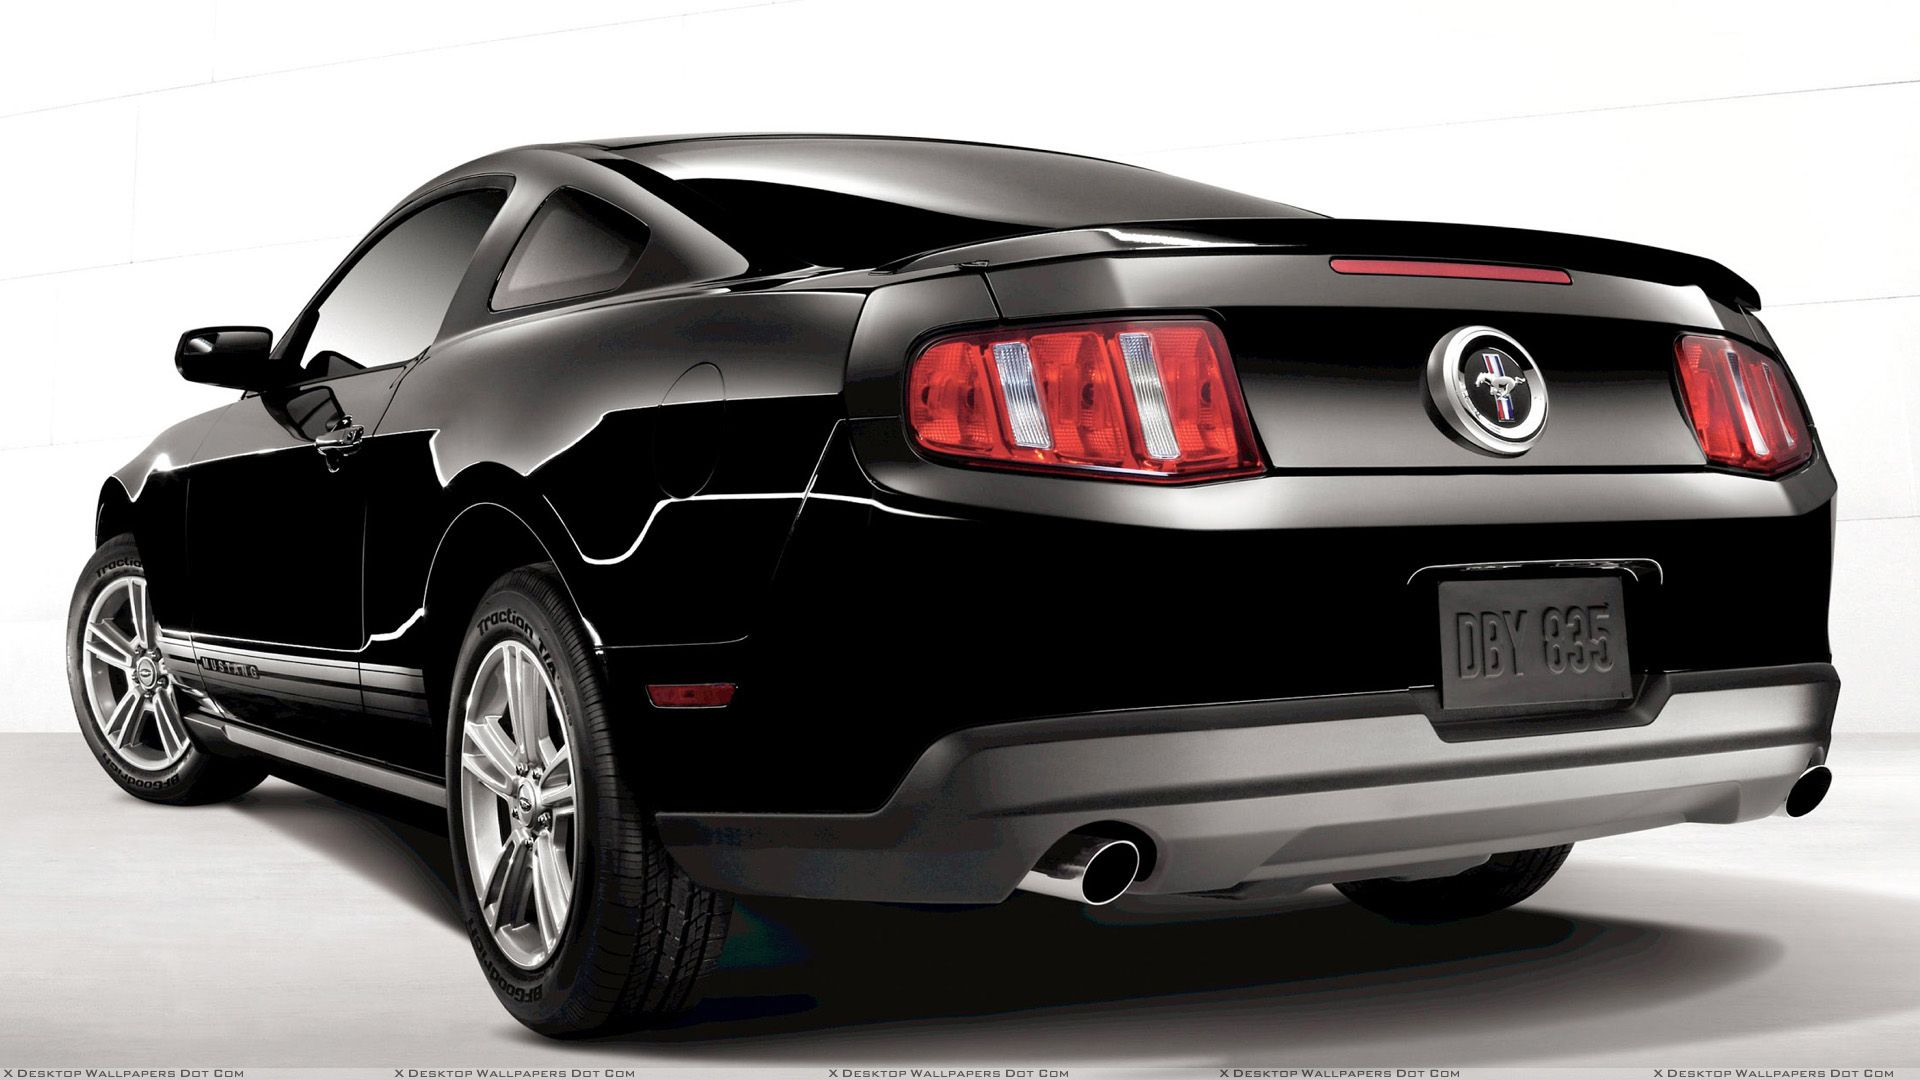 Back Side Pose Of 2011 Ford Mustang V6 In Black 2011 Ford